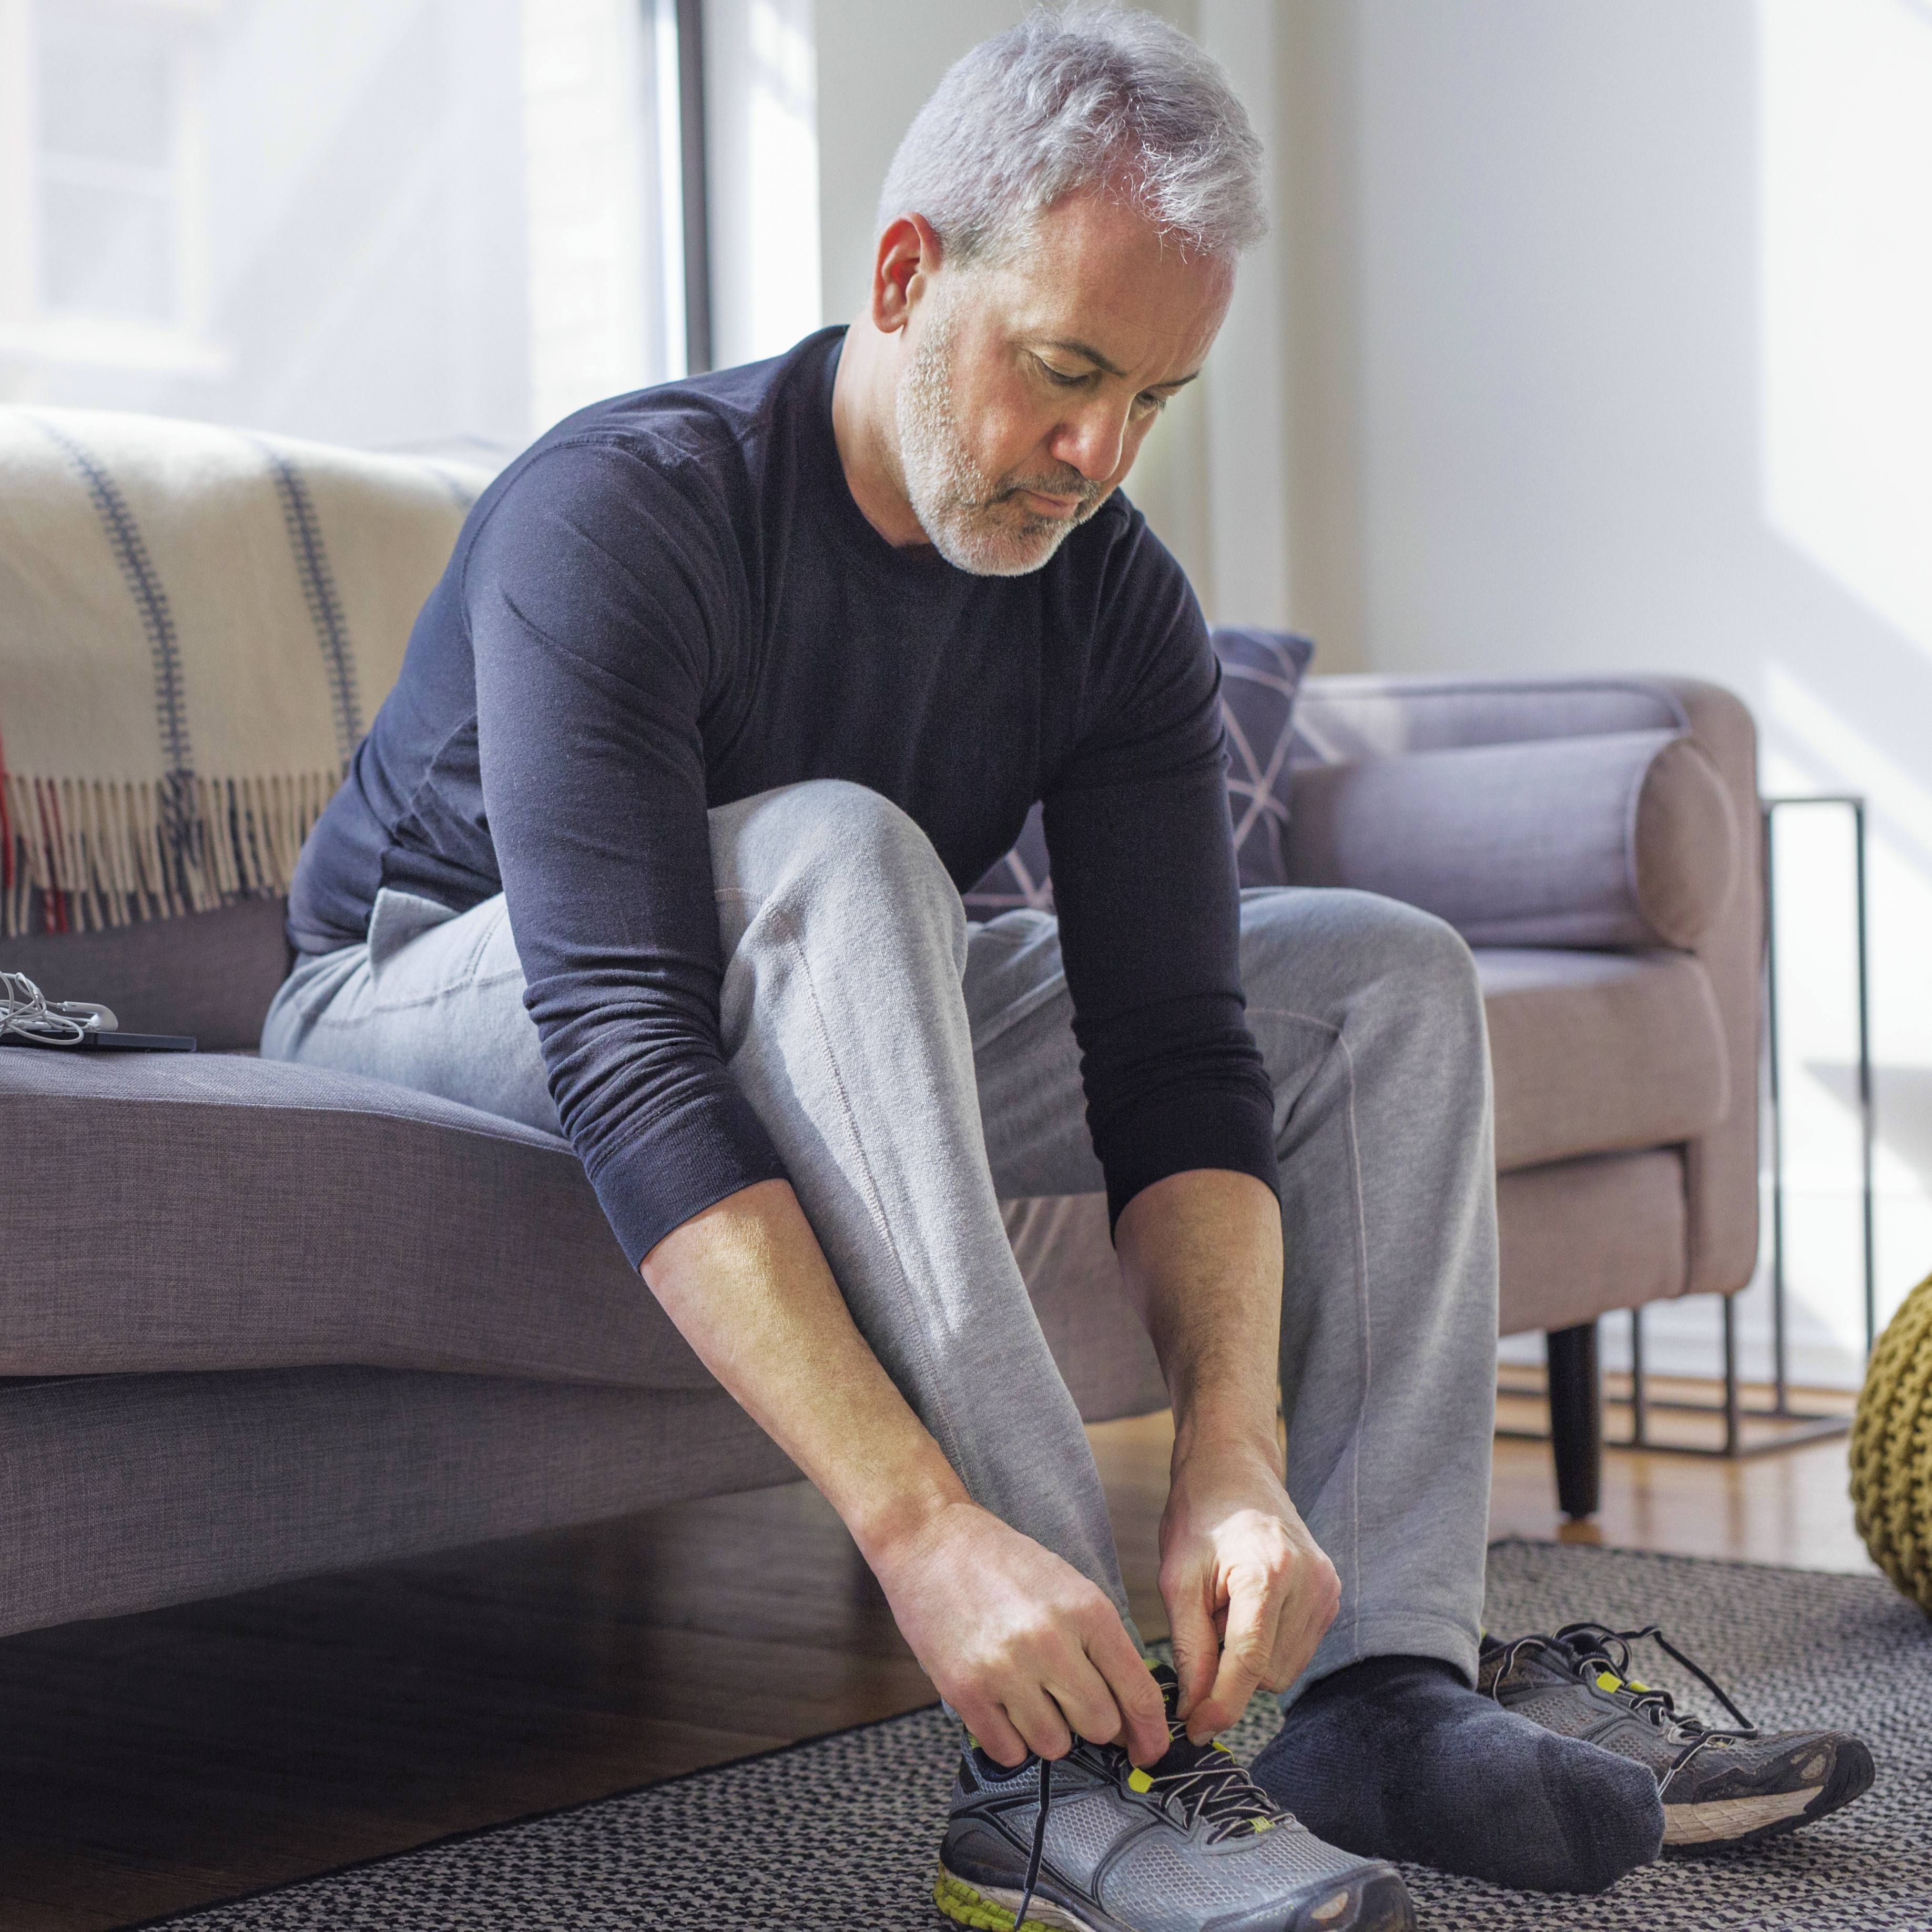 a middle aged white man in sweatpants sitting on a couch and tying exercise shoes